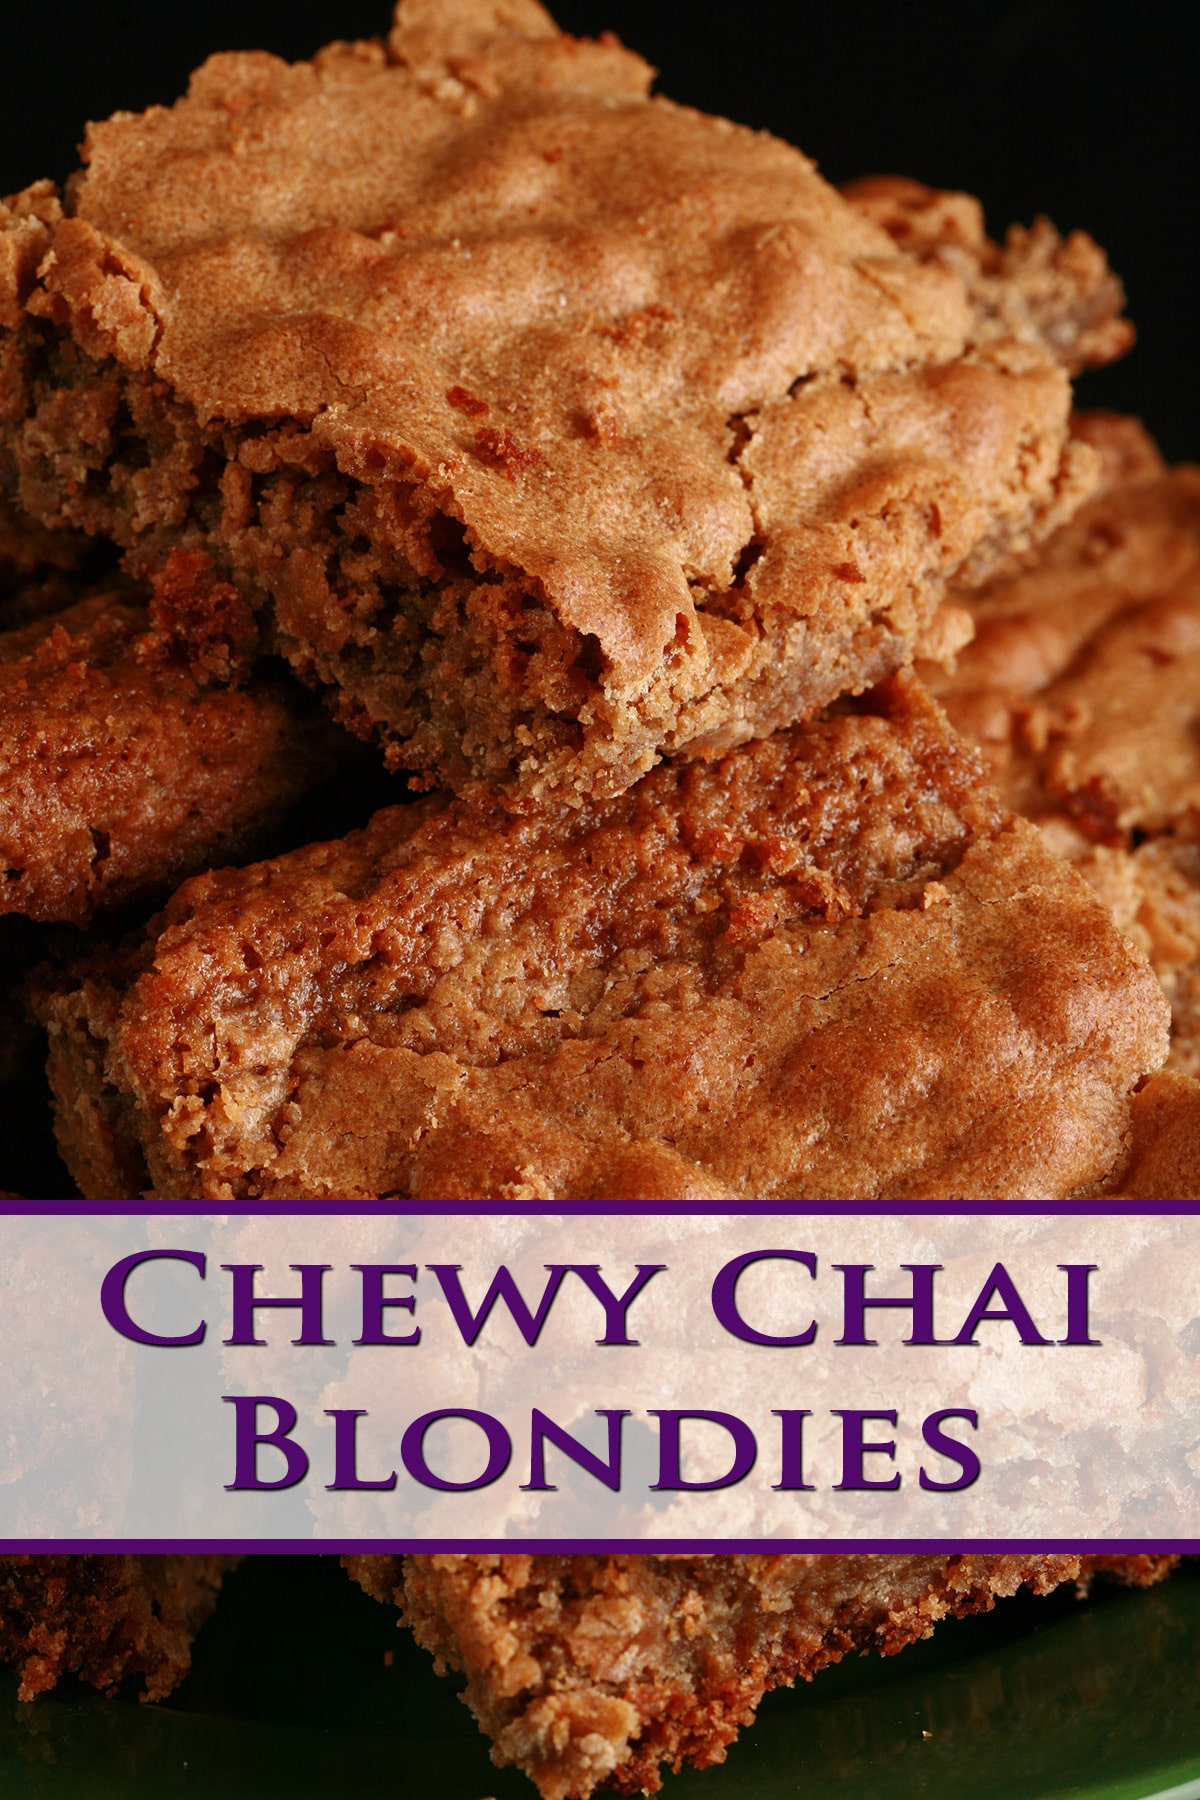 Several chewy chai blondies stacked on a small green plate.